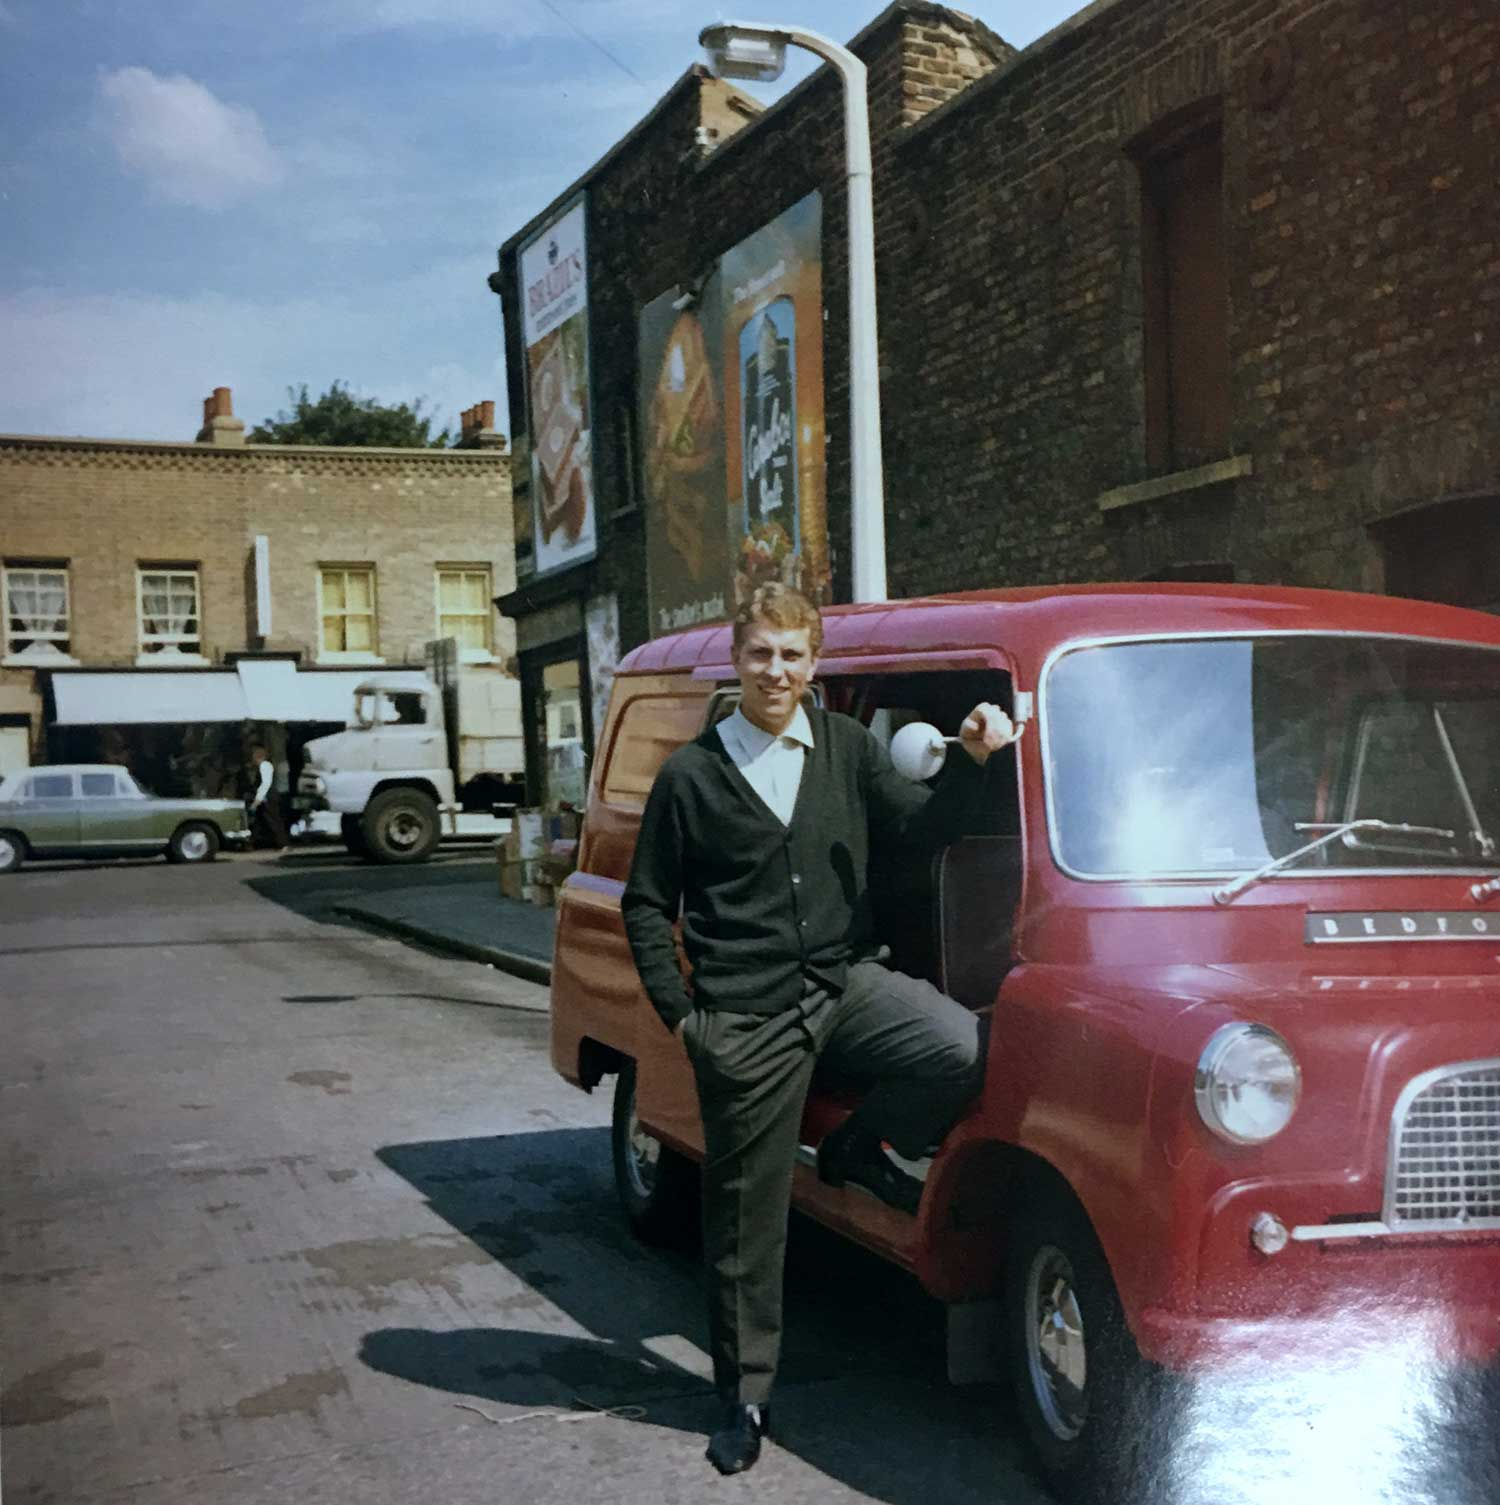 a man and a red van